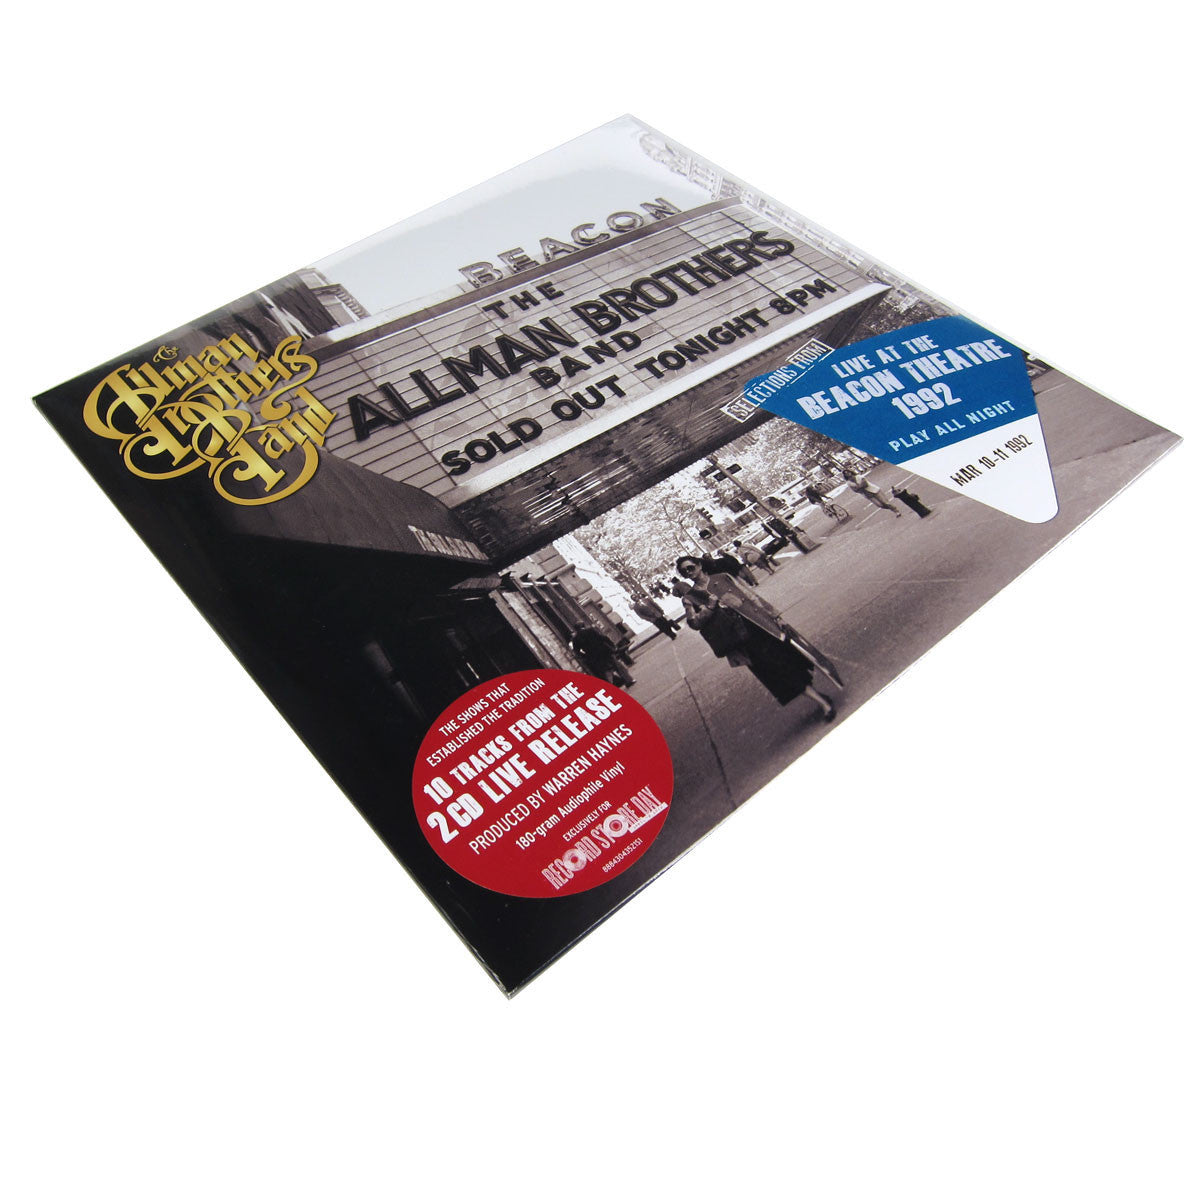 Allman Brothers: Selections From Play All Night: Live At The Beacon Theatre 1992 Vinyl 2LP (Record Store Day 2014)